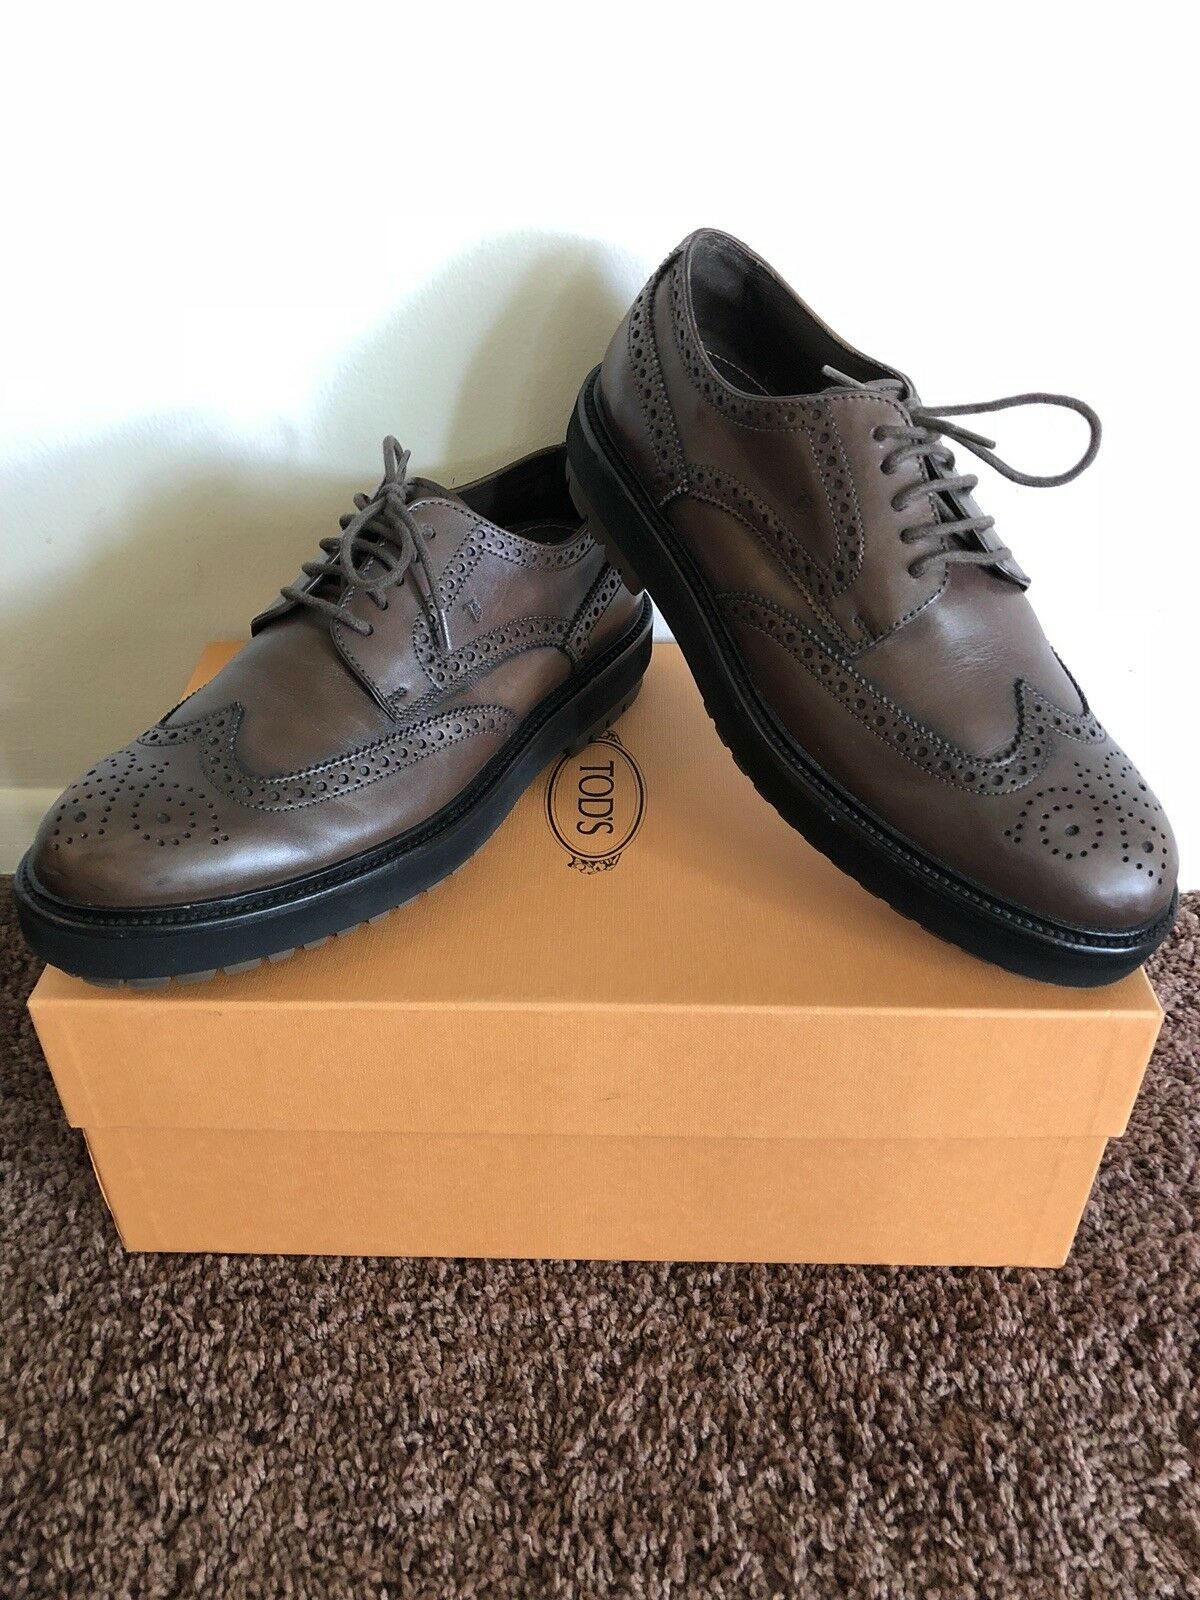 Tod's Mens Shoes Size 7 Casual leather fashion.